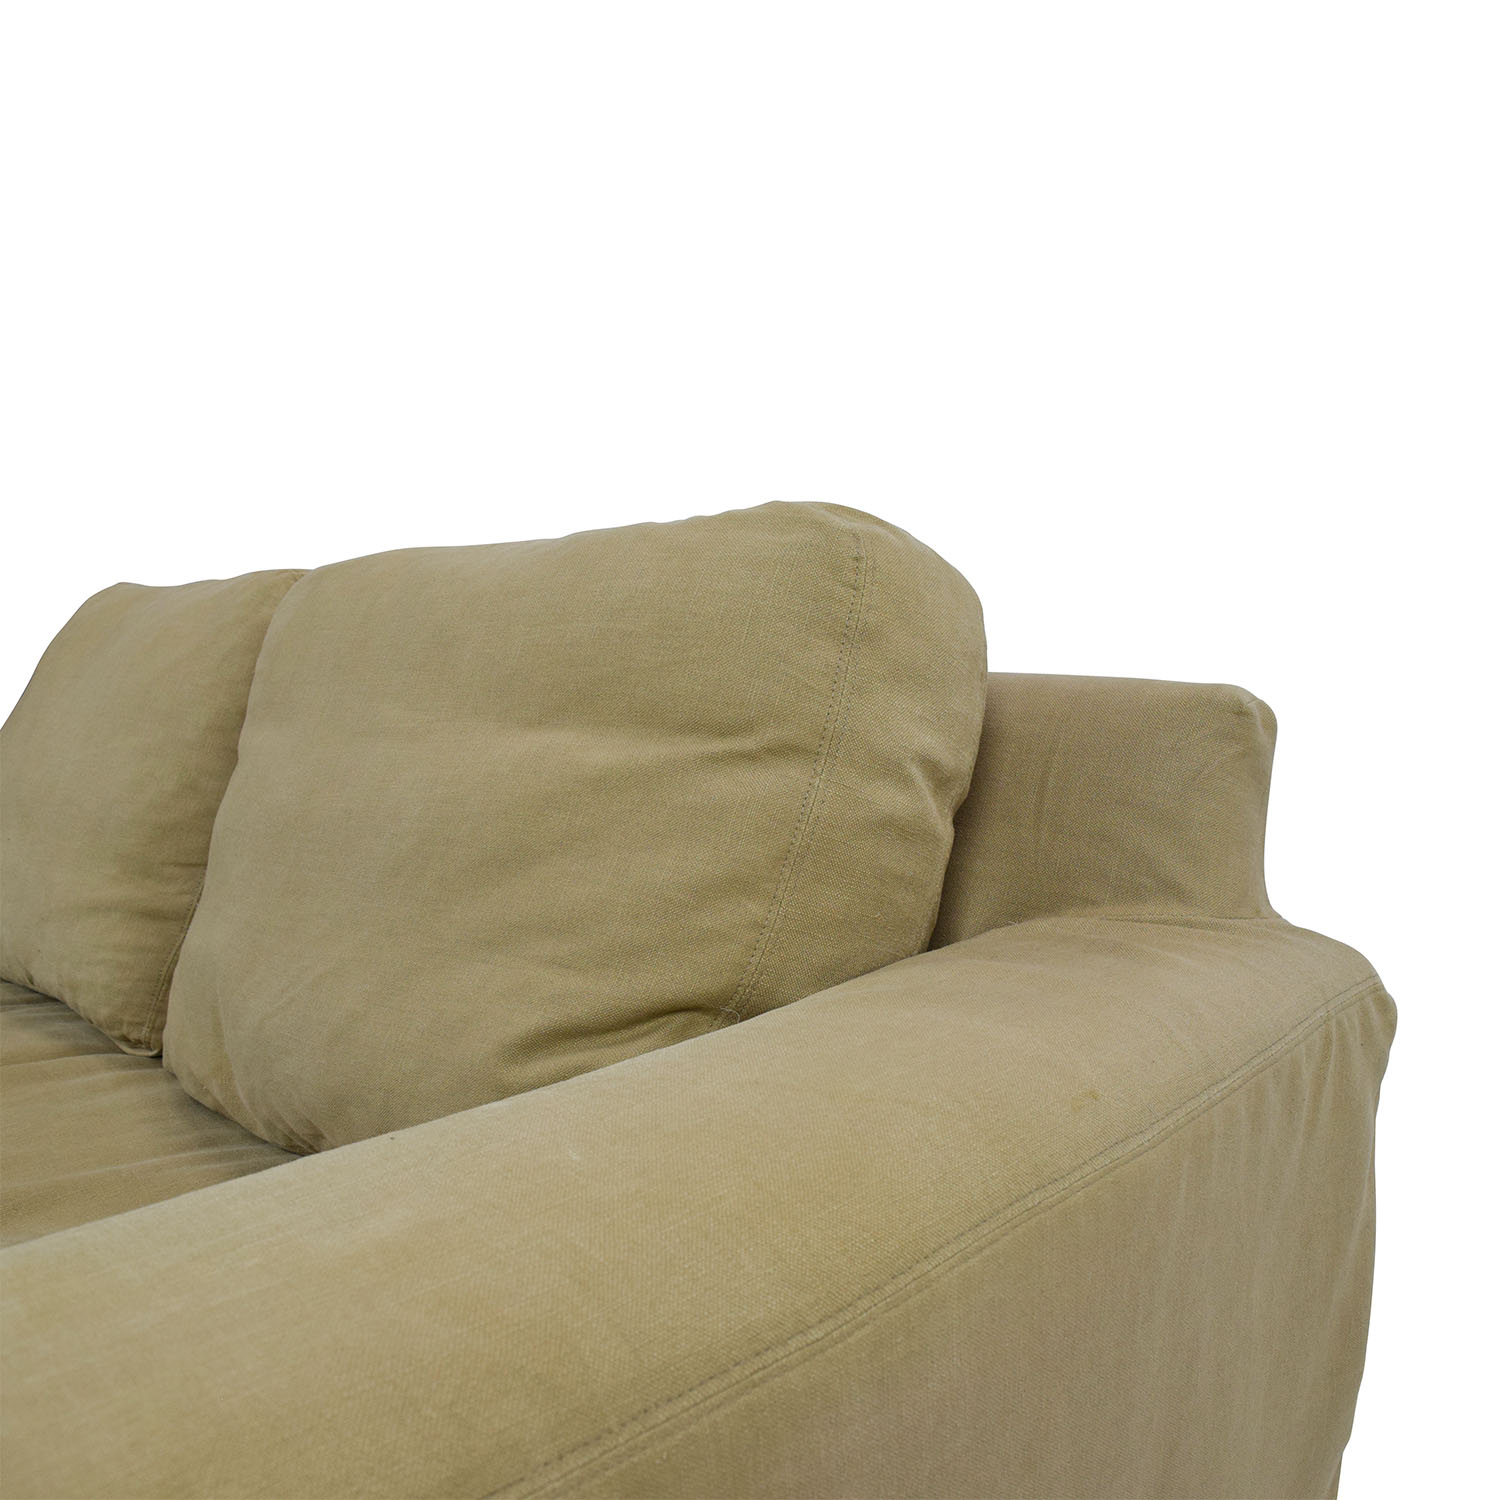 ... Pottery Barn Pottery Barn Slipcovered Couch For Sale ...